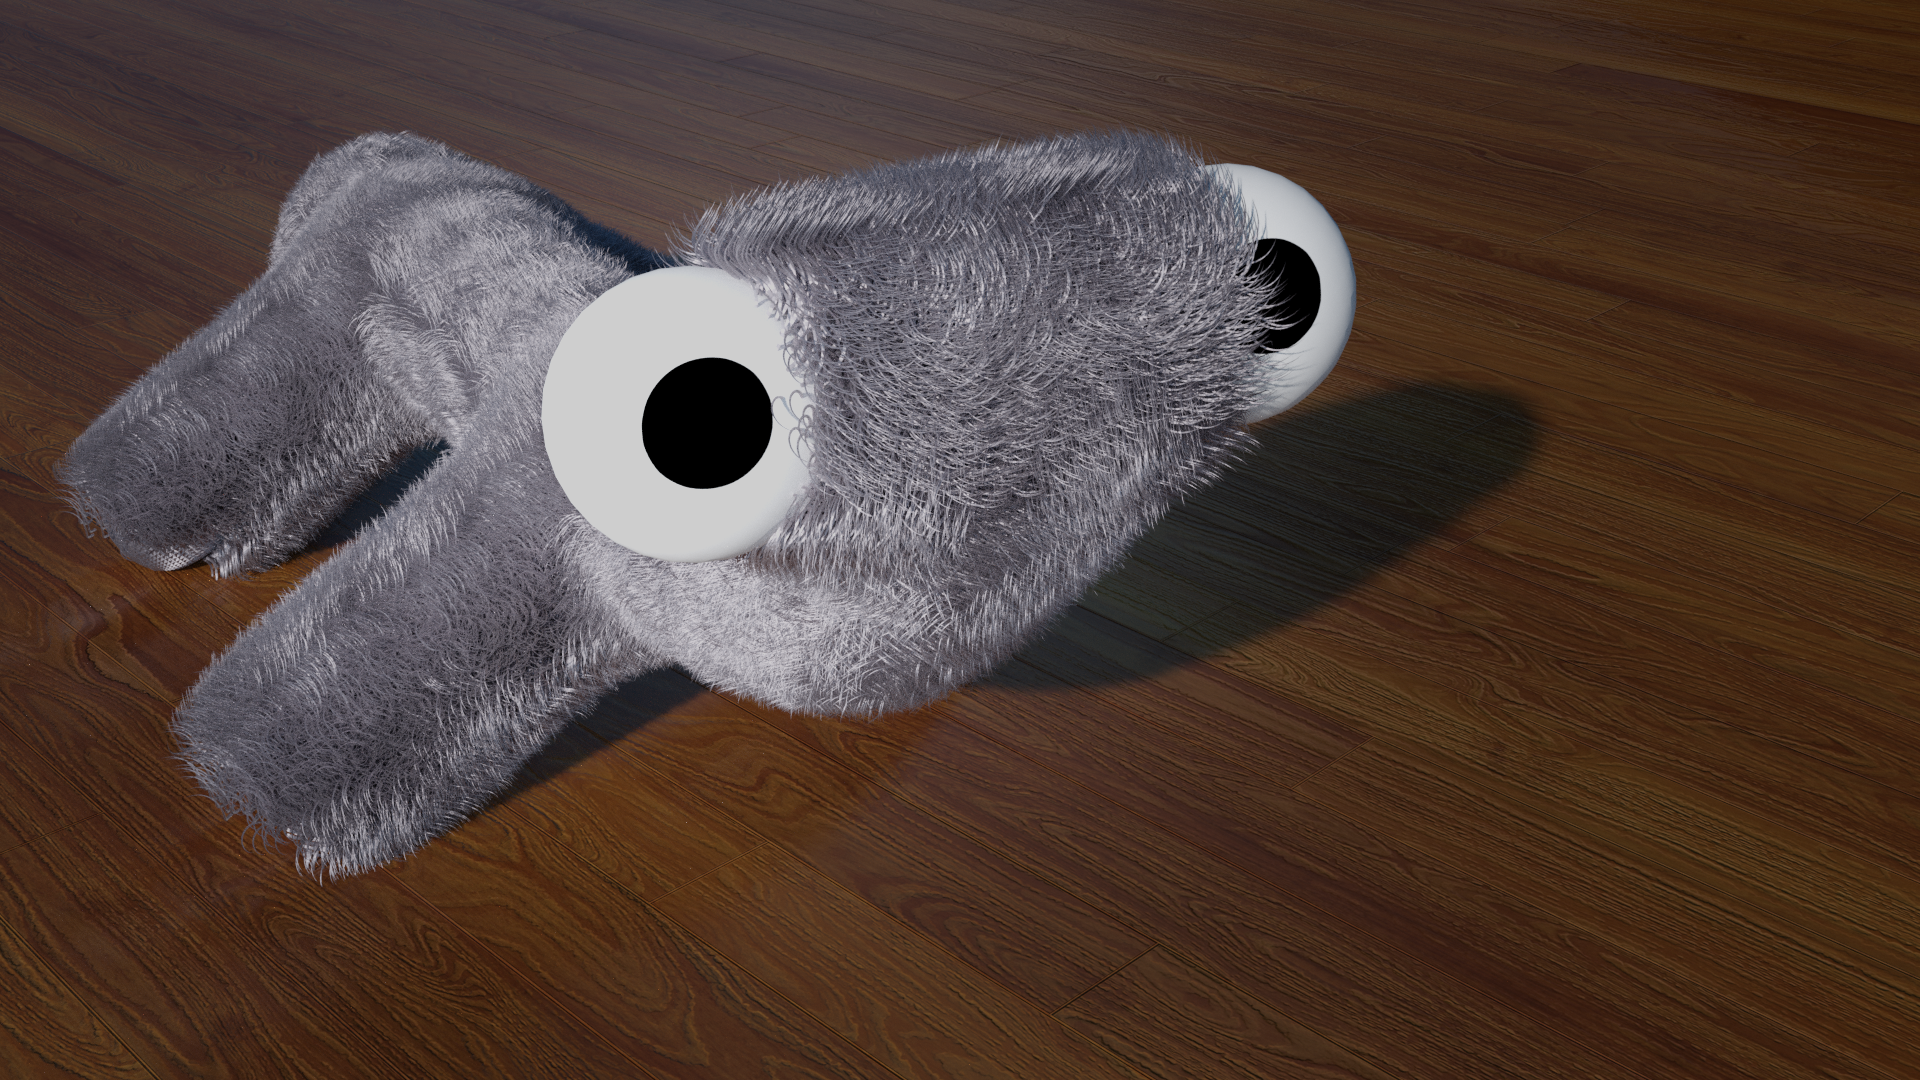 Just another silly render with a fluffy something :D #blender #b3d